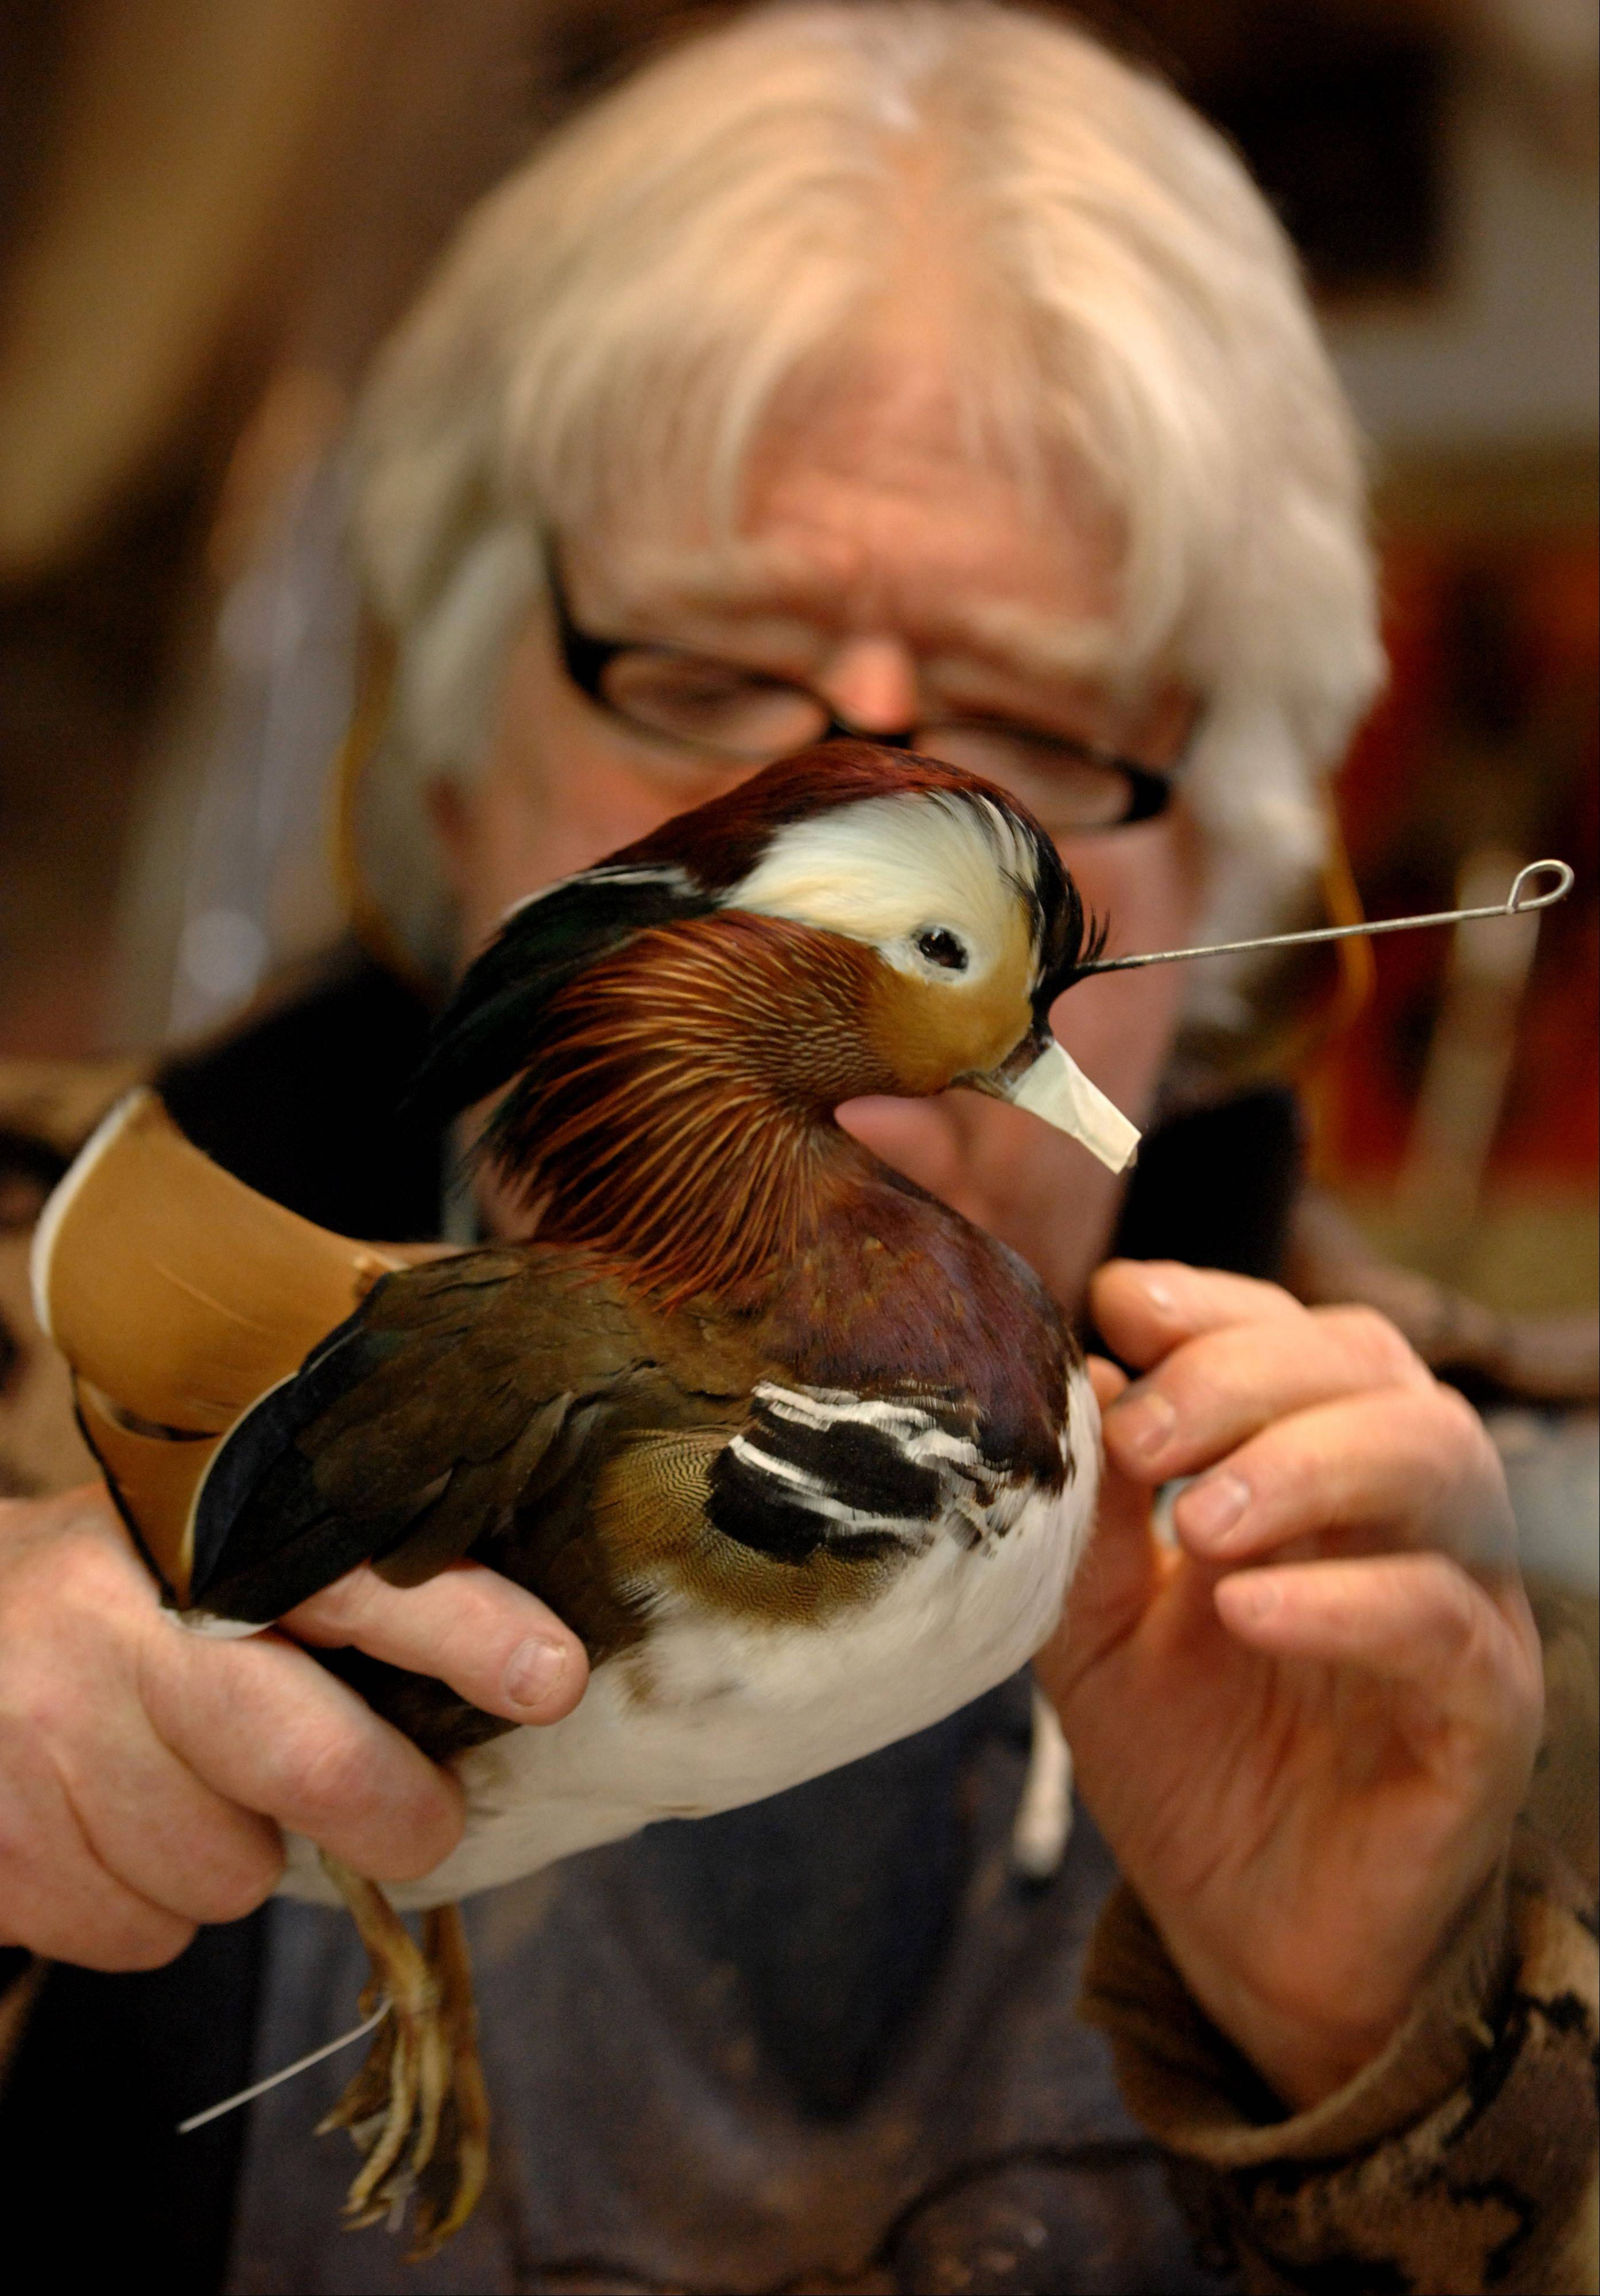 Vern Brancamp estimates that he has mounted between 3000 to 4000 ducks and other birds since opening Vern's Taxidermy in Algonquin 40 years ago.